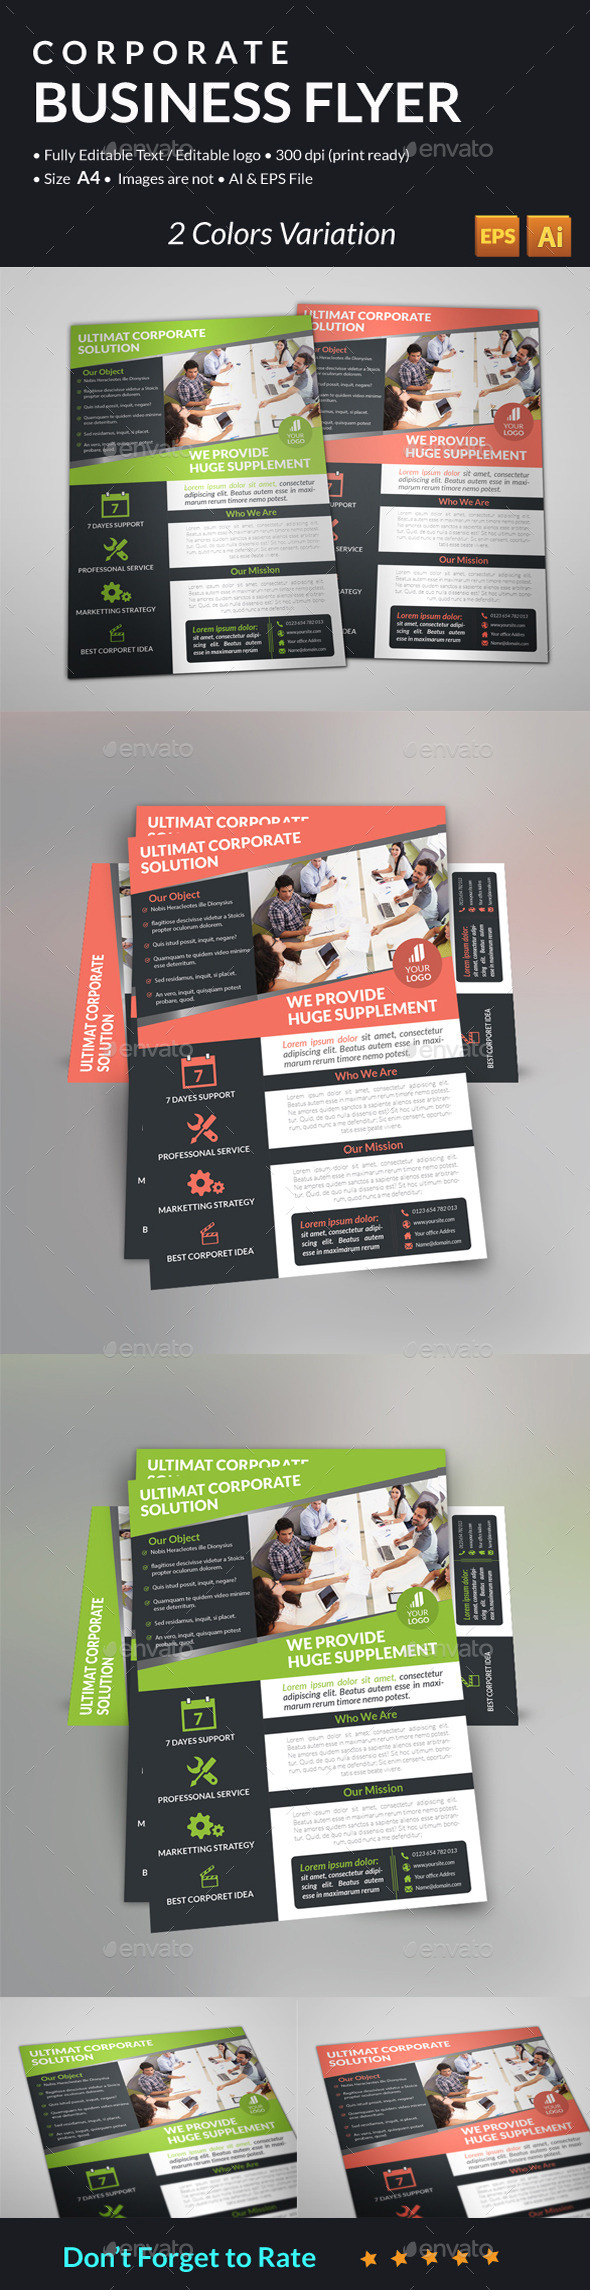 GraphicRiver Corporate Business Flyer 10985909